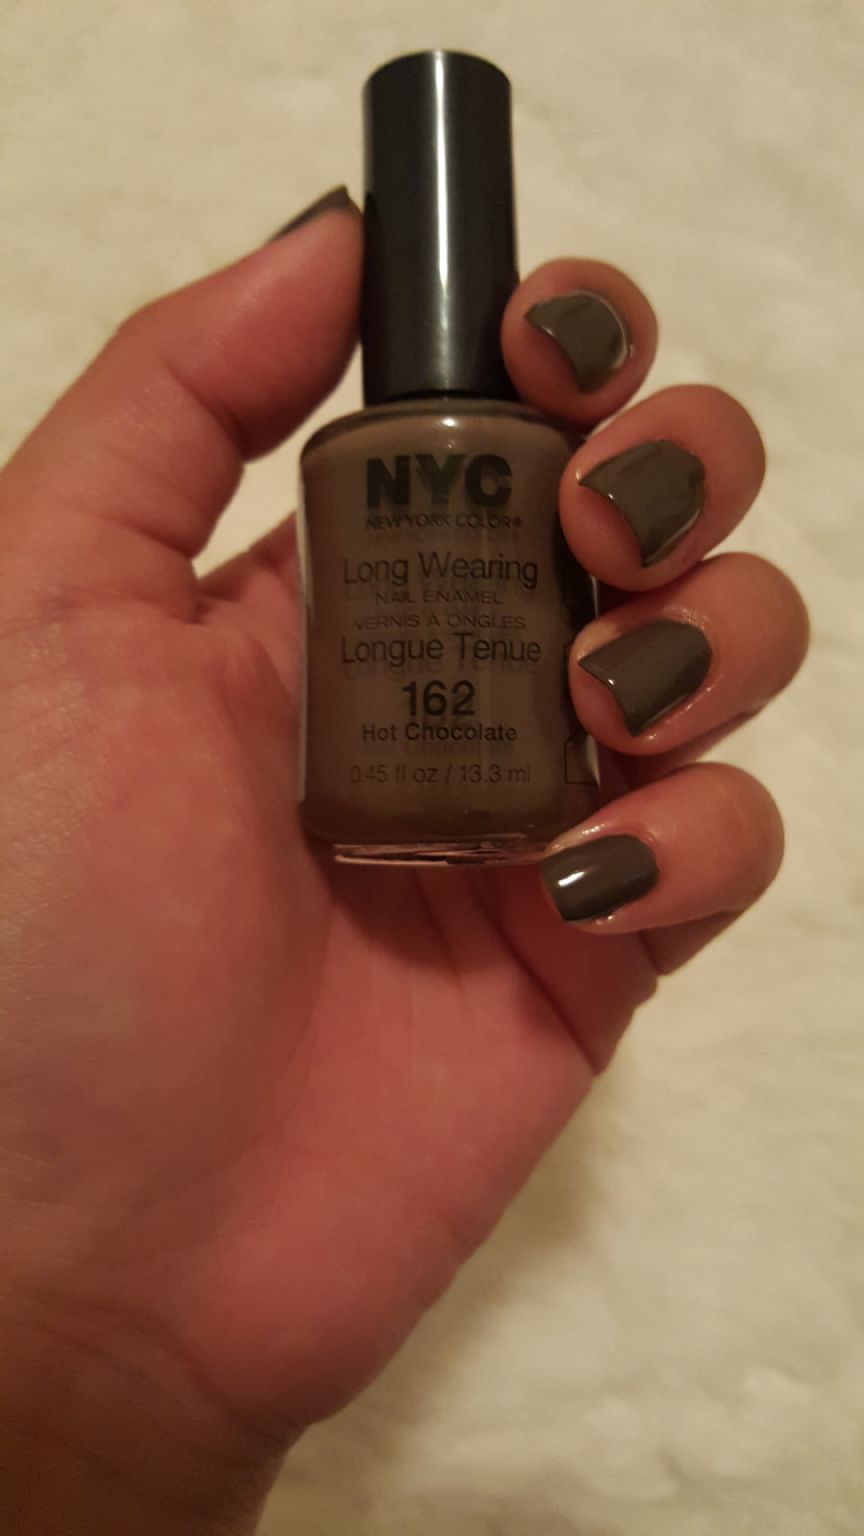 New York Color Hot Chocolate reviews, photos - Makeupalley